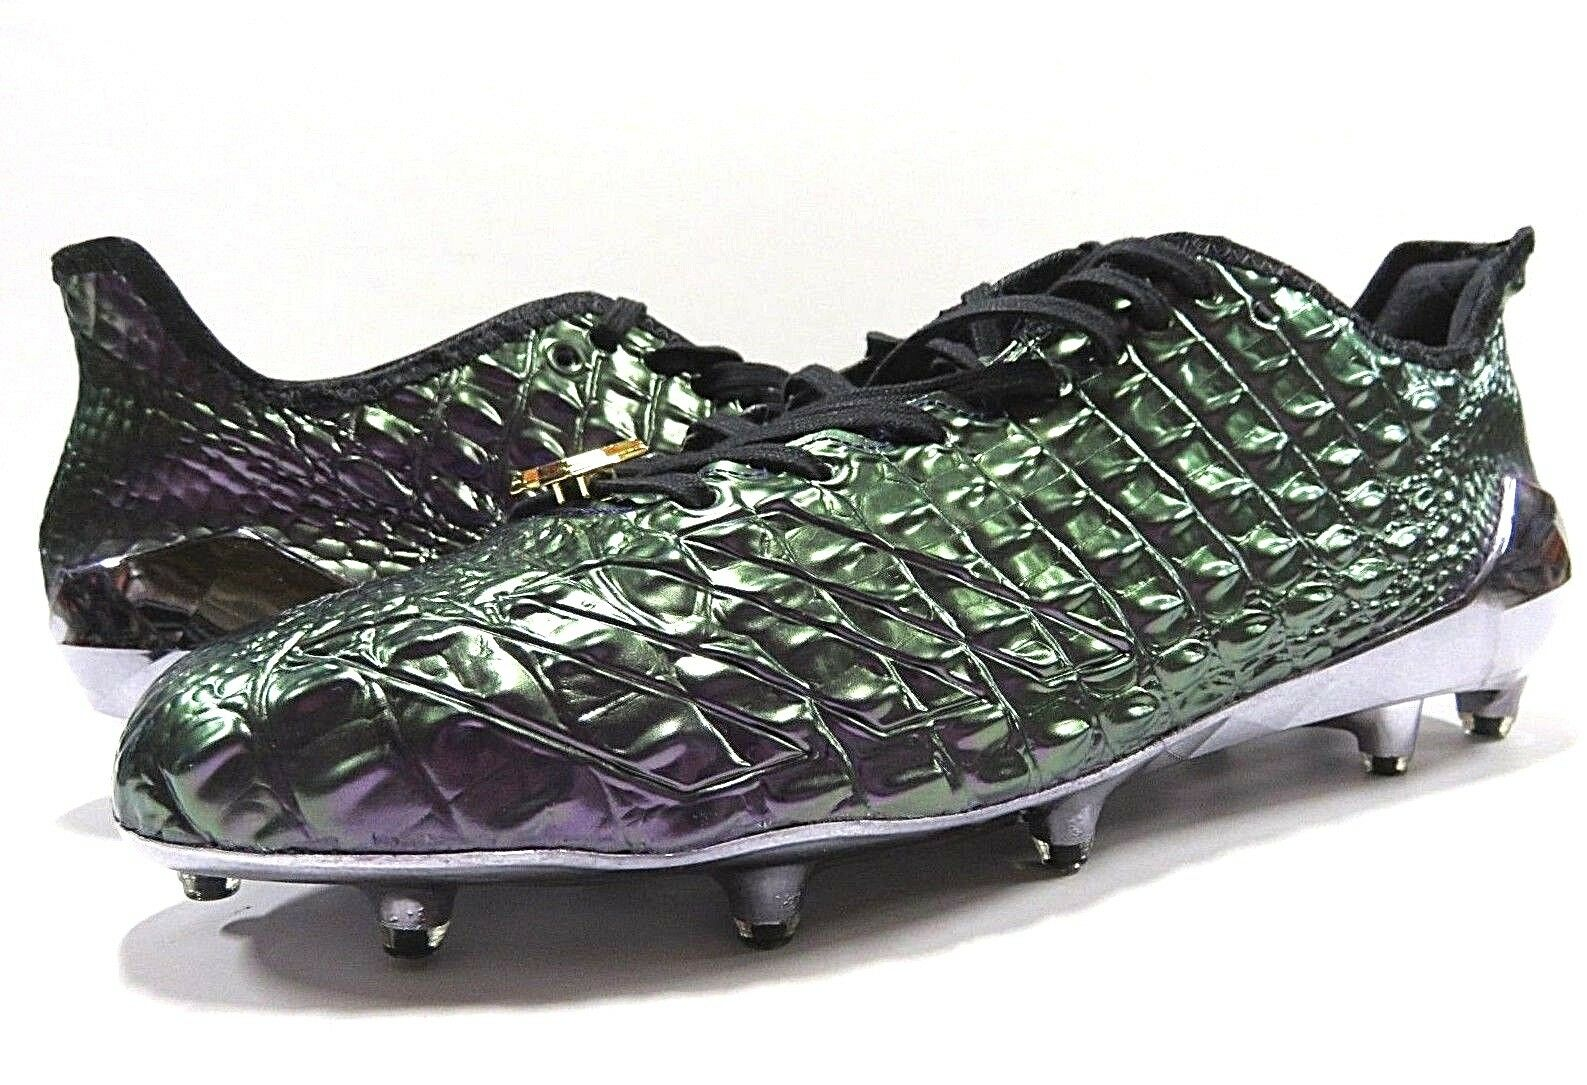 da1293f6b00 ADIDAS Adizero 5-Star 6.0 Sundays Pearlescent Football Cleat Men s Size 14  NWT